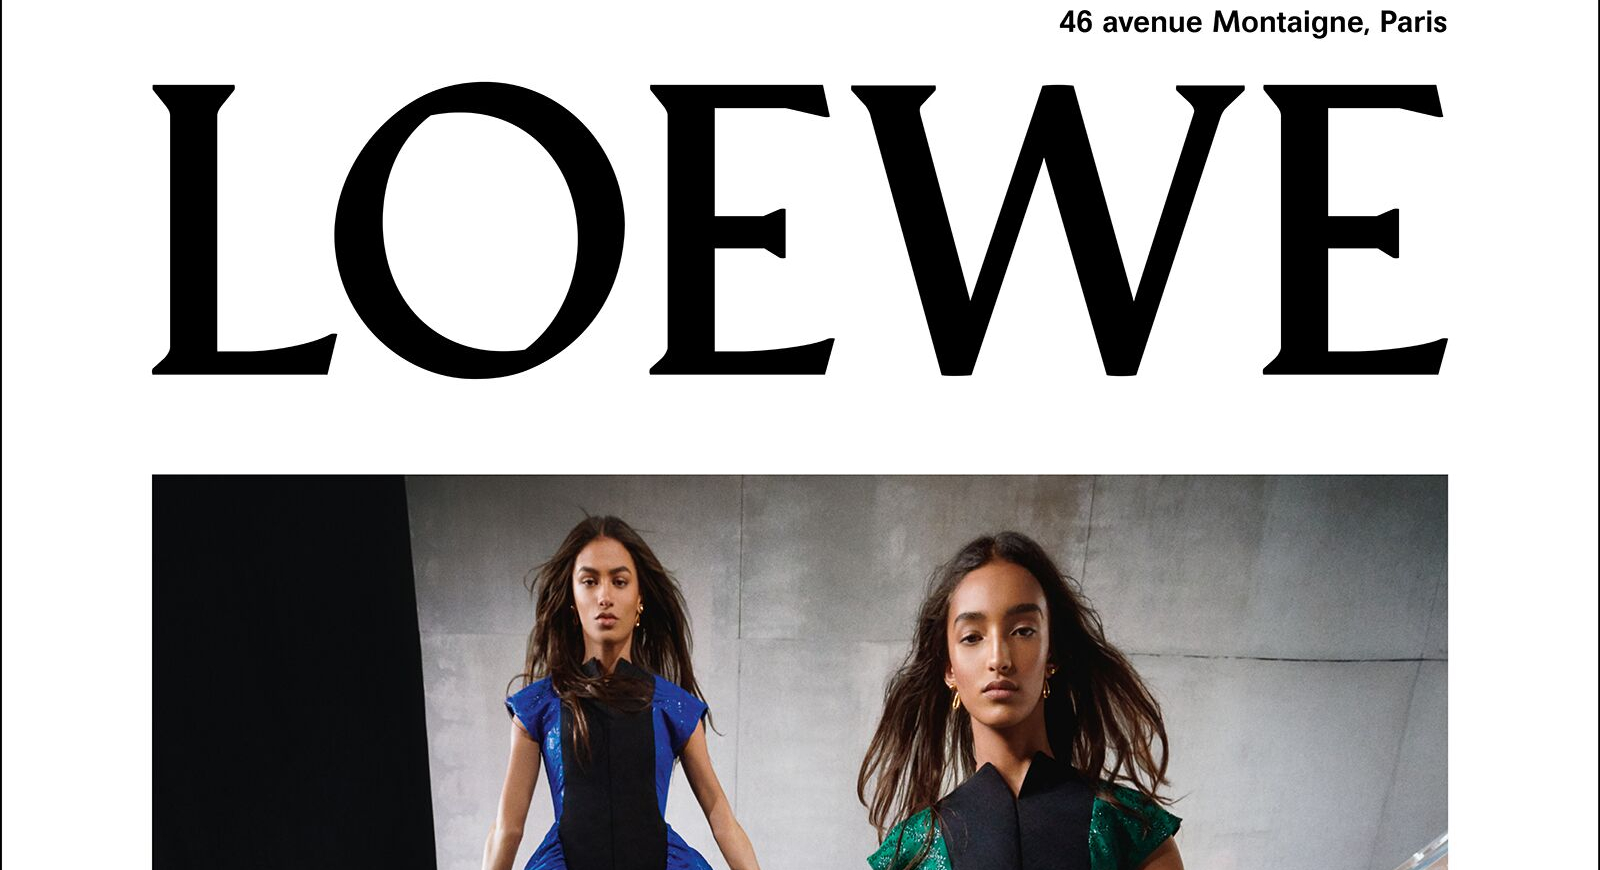 LIVESTREAM: Loewe Women's Autumn/Winter 20-21